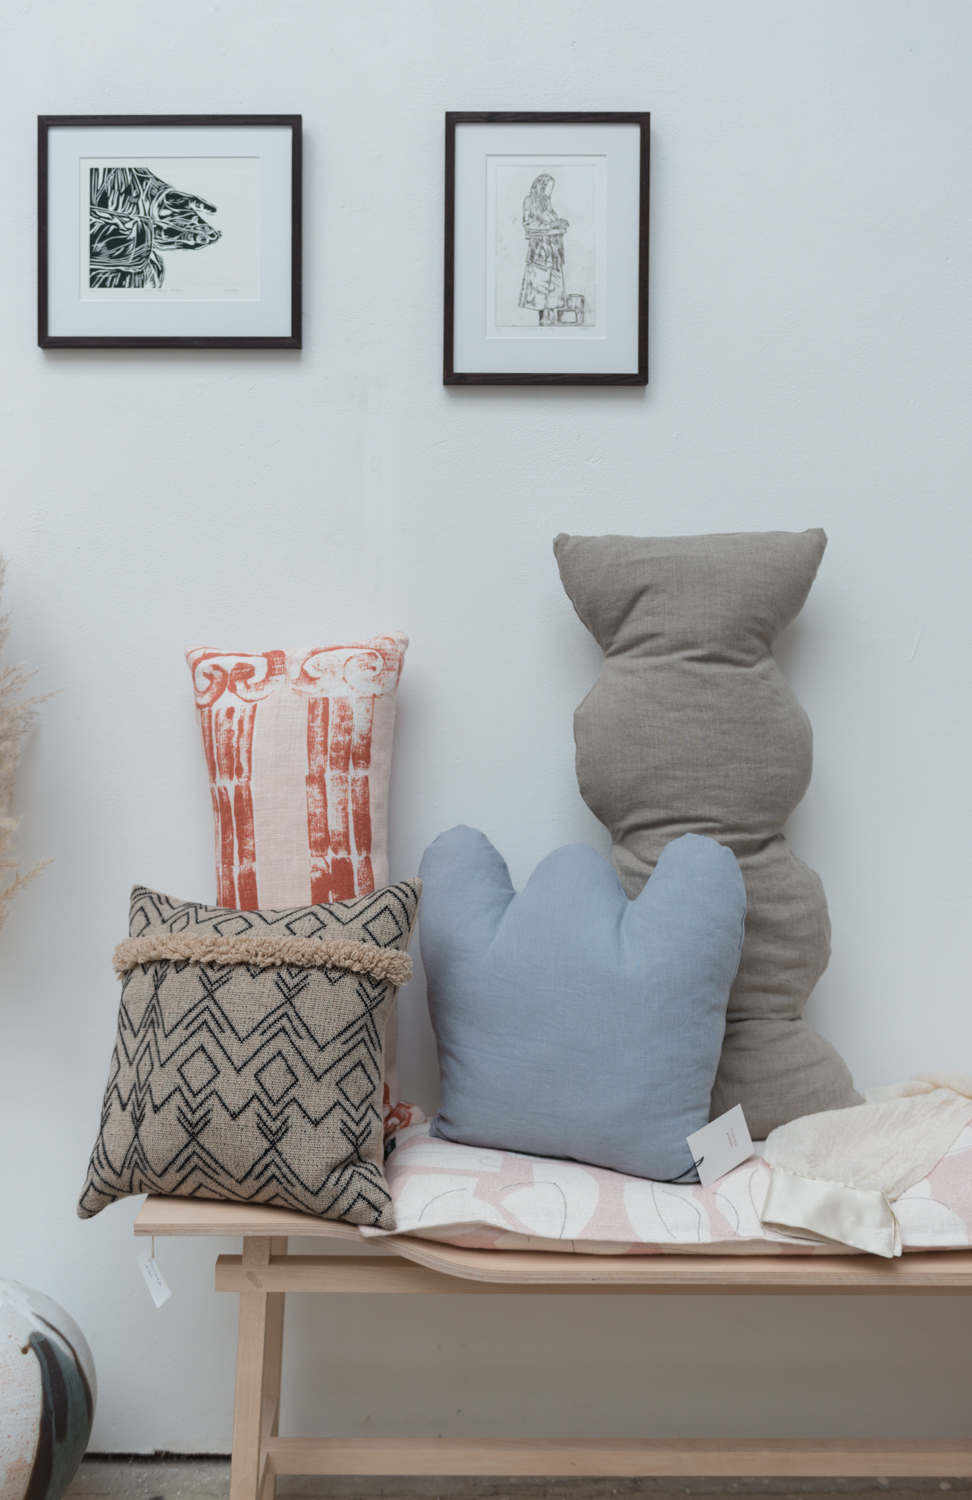 Shape cushions by aeand studio. Other cushions by Vicky Cowin and Stoff studio. Prints by Sophie Nicole Dodds. Peckham craft show 2019.